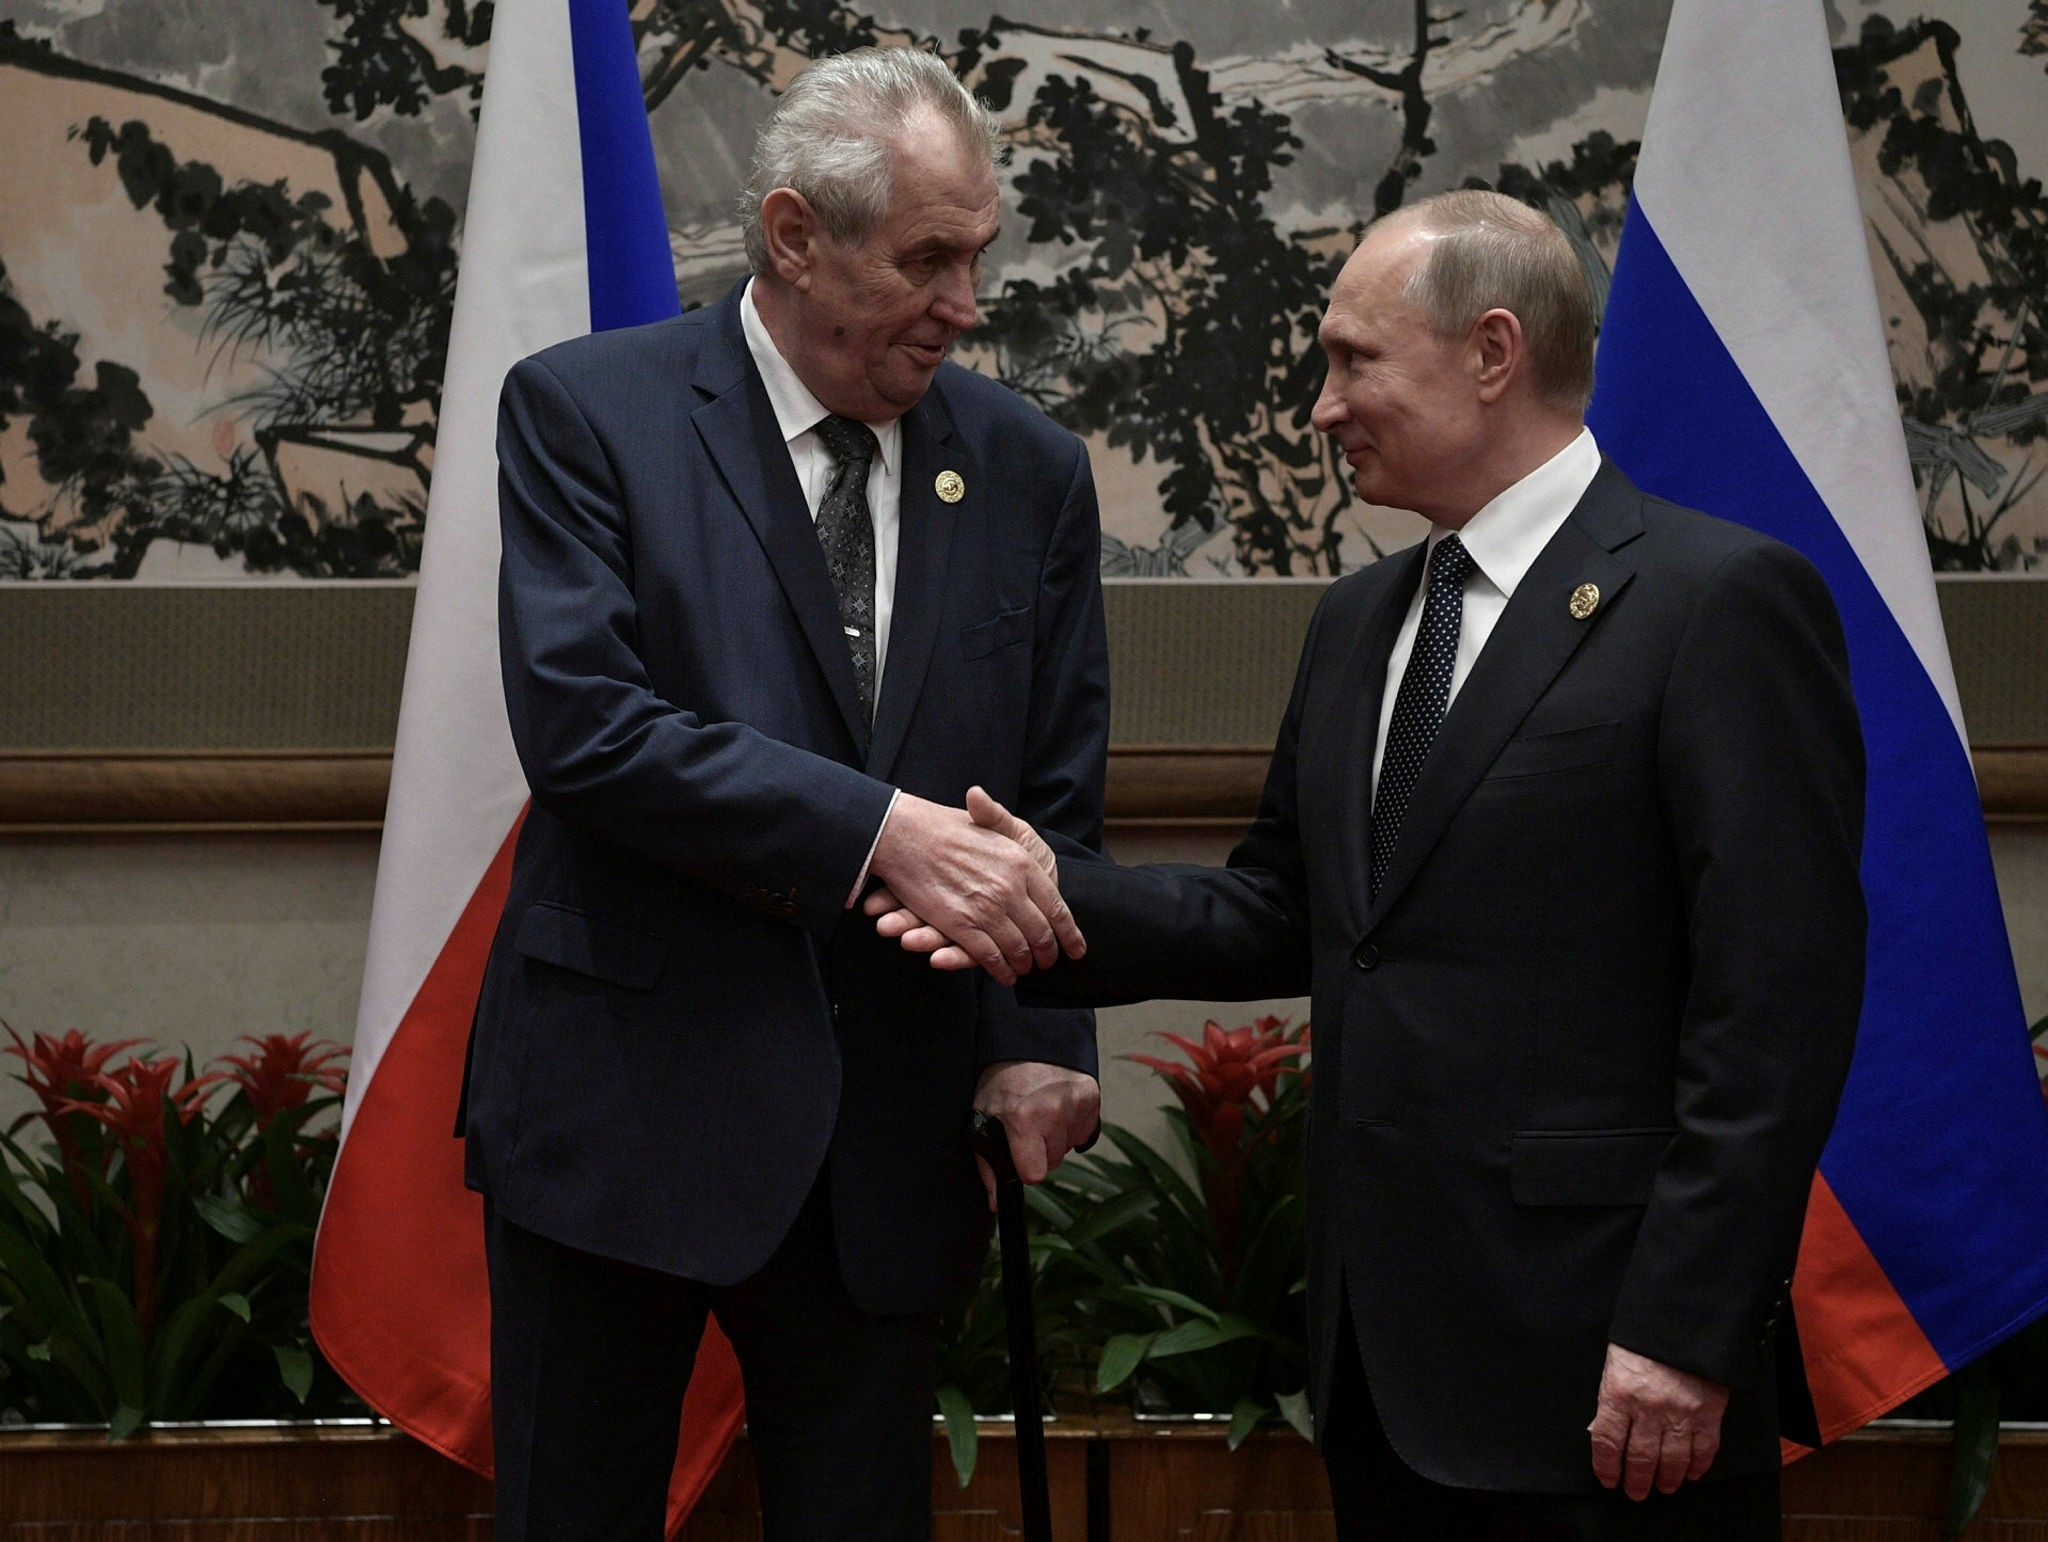 Russian President Vladimir Putin (R) meets with Czech Republic's President Milos Zeman (L) during the Belt and Road Forum (BRF) in Beijing, China, 14 May 2017. (Photo by EPA via Kremlin)